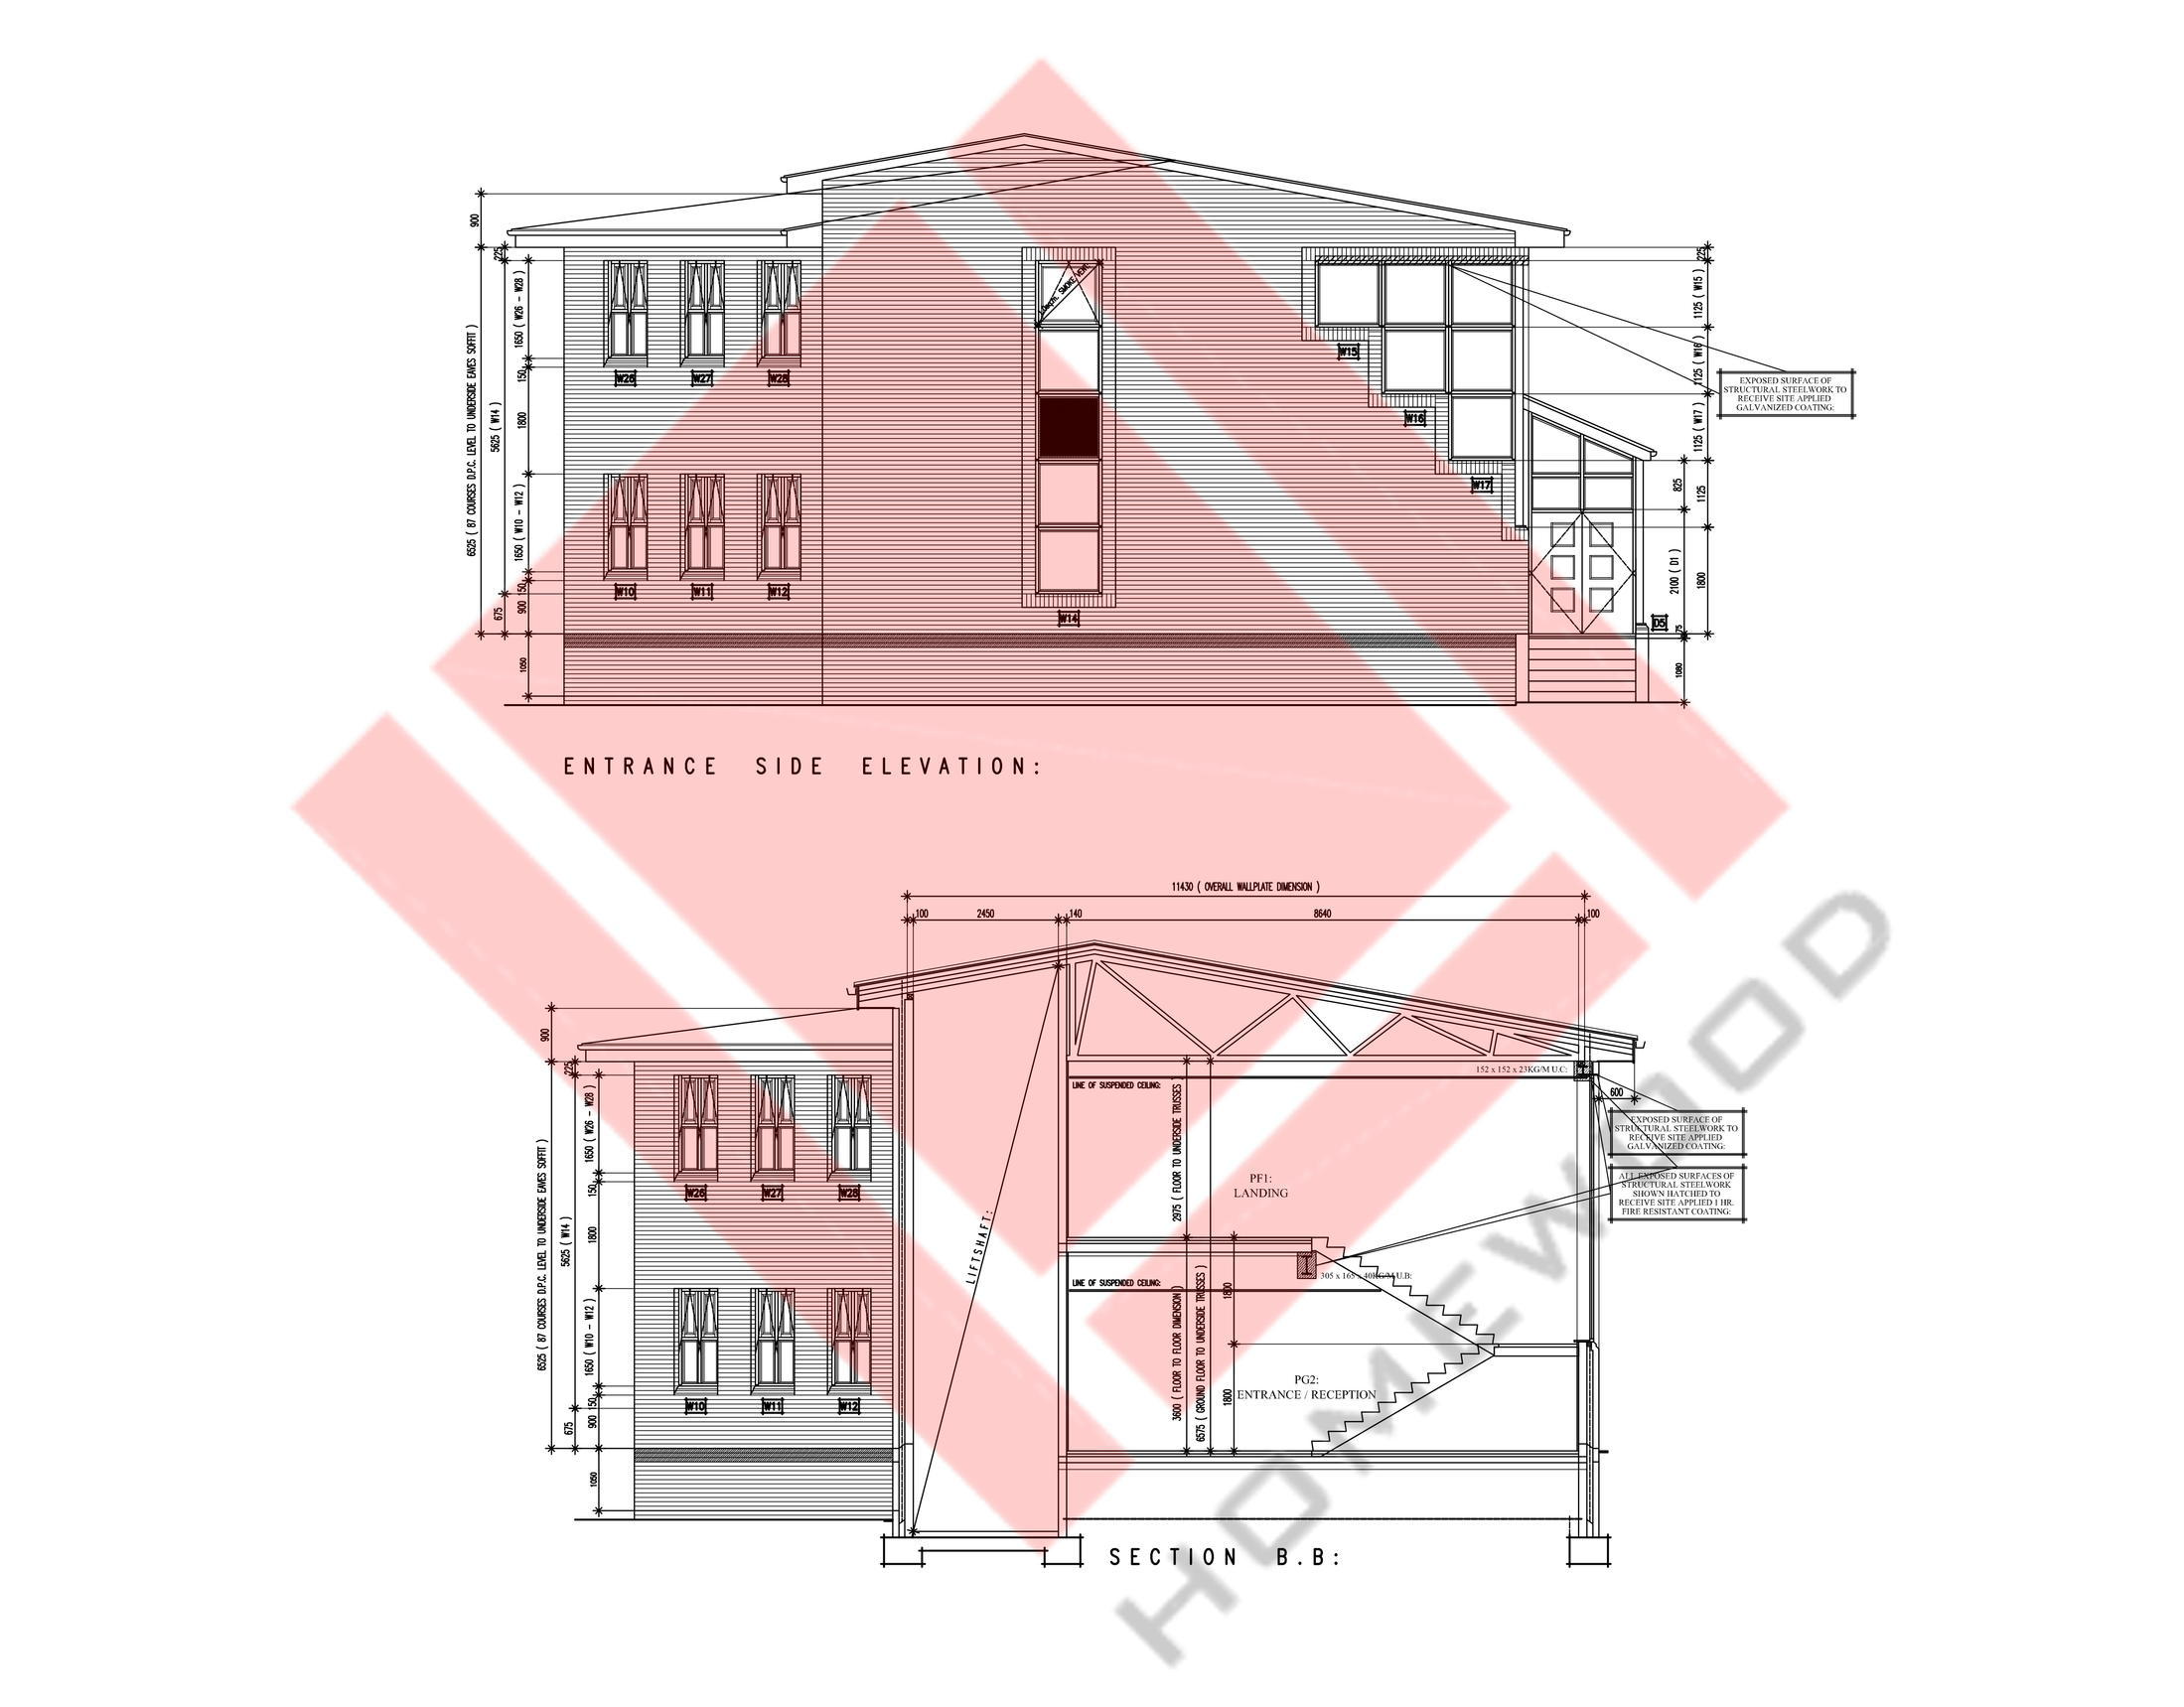 02 Elevation & Section.Image.Marked_1.png